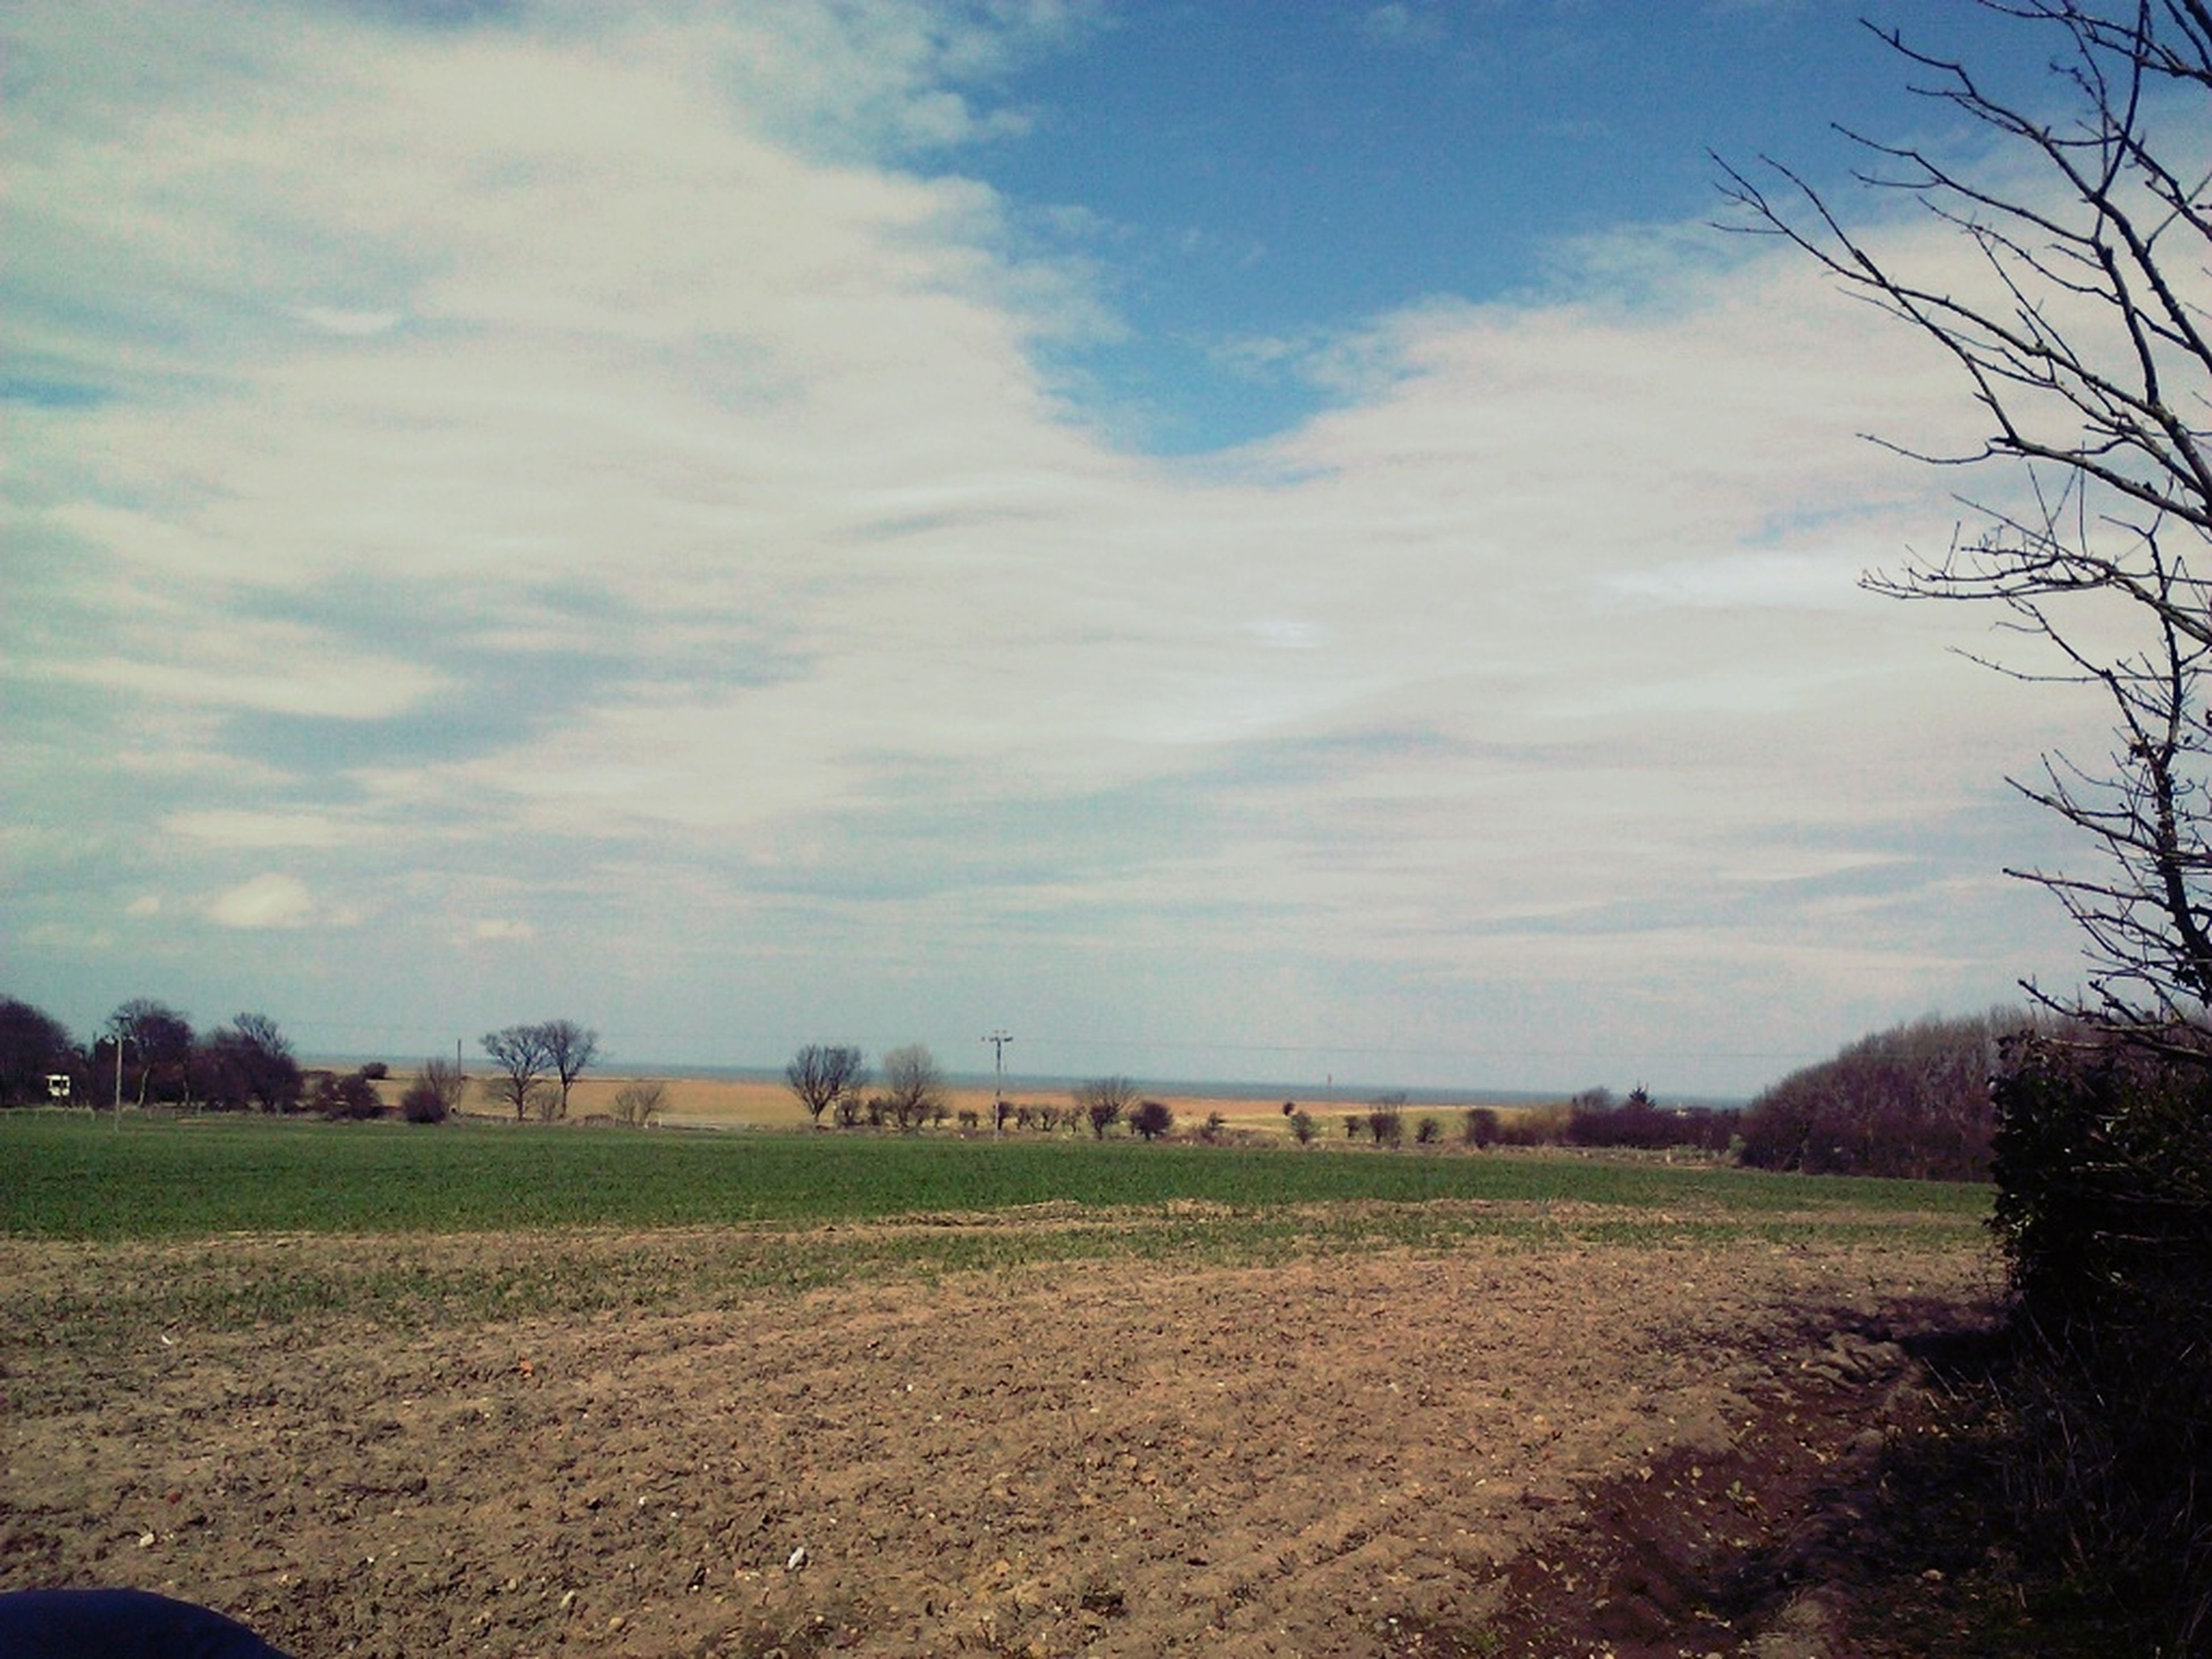 sky, field, landscape, cloud - sky, tranquil scene, tranquility, tree, grass, scenics, cloud, nature, beauty in nature, cloudy, rural scene, day, grassy, growth, outdoors, bare tree, no people